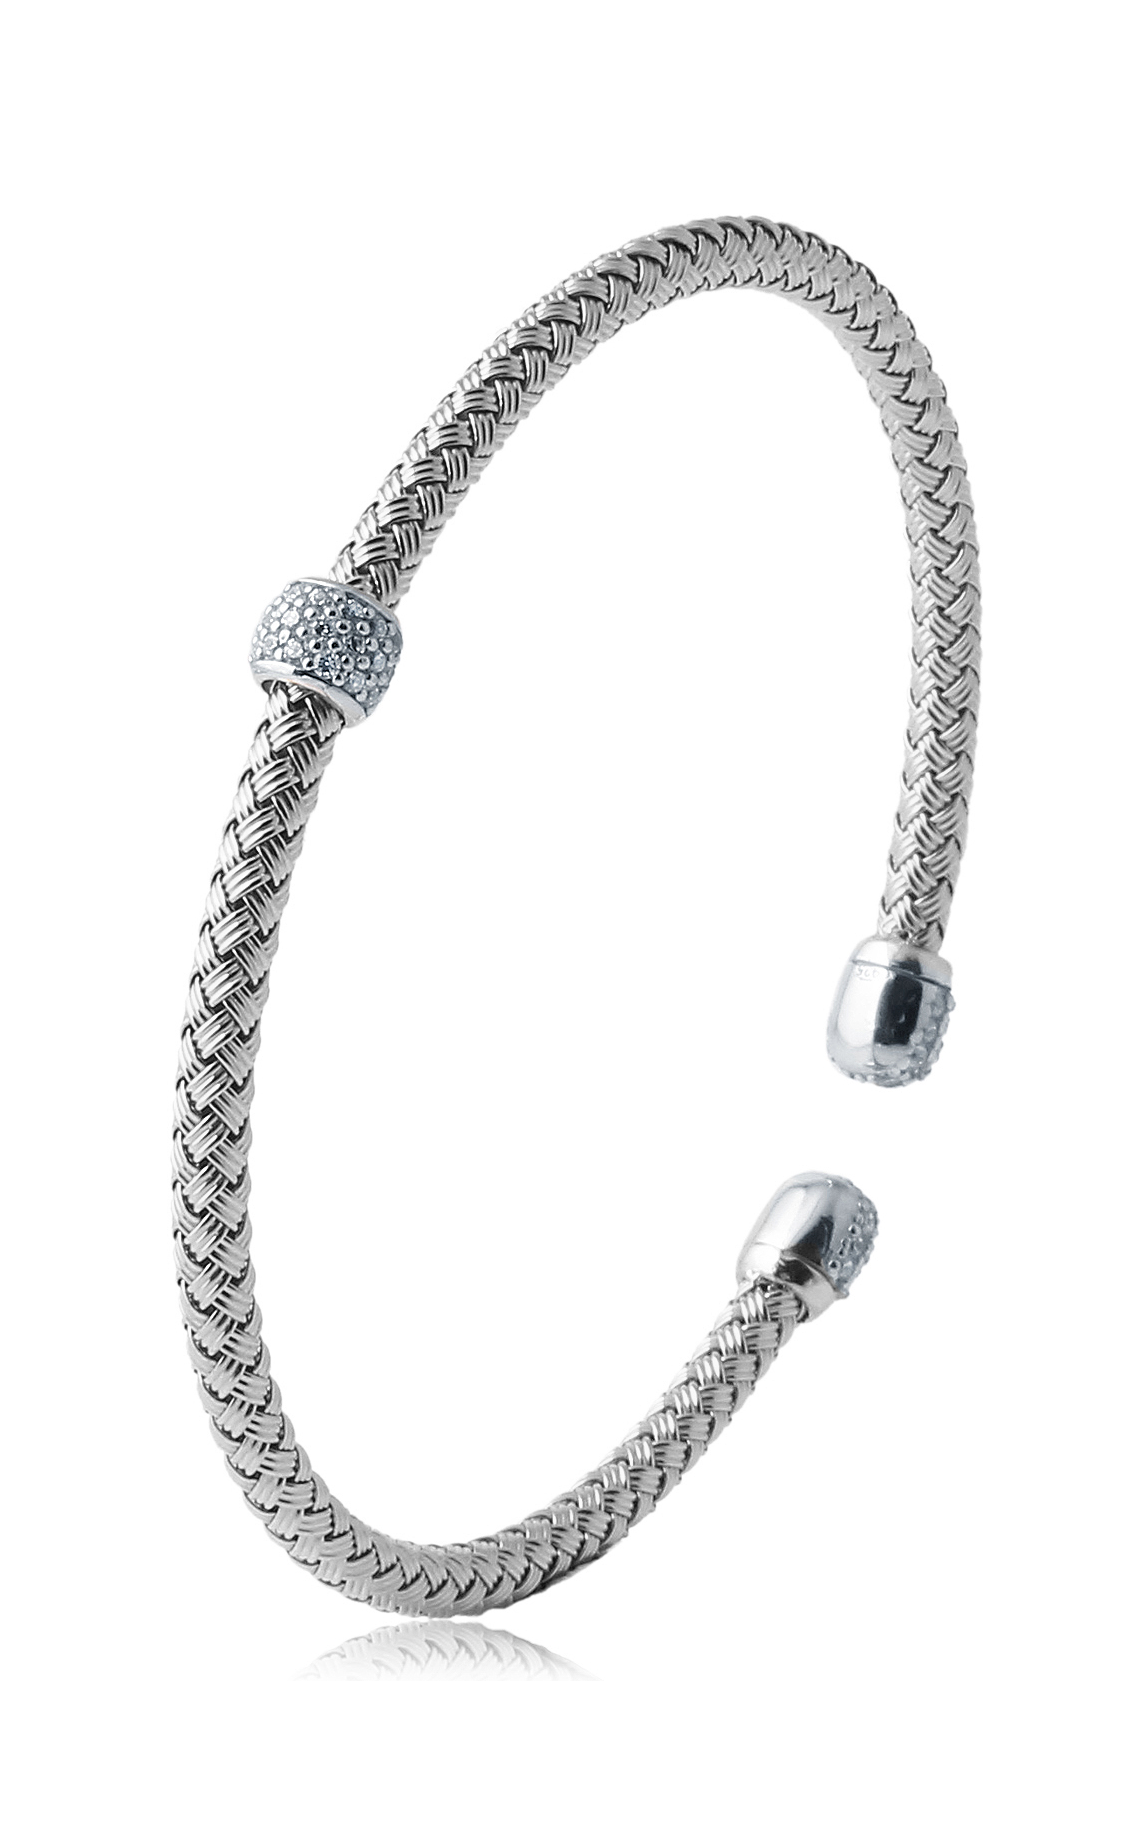 Charles Garnier Bracelet Paolo Collection MLC8059WZ_2 product image